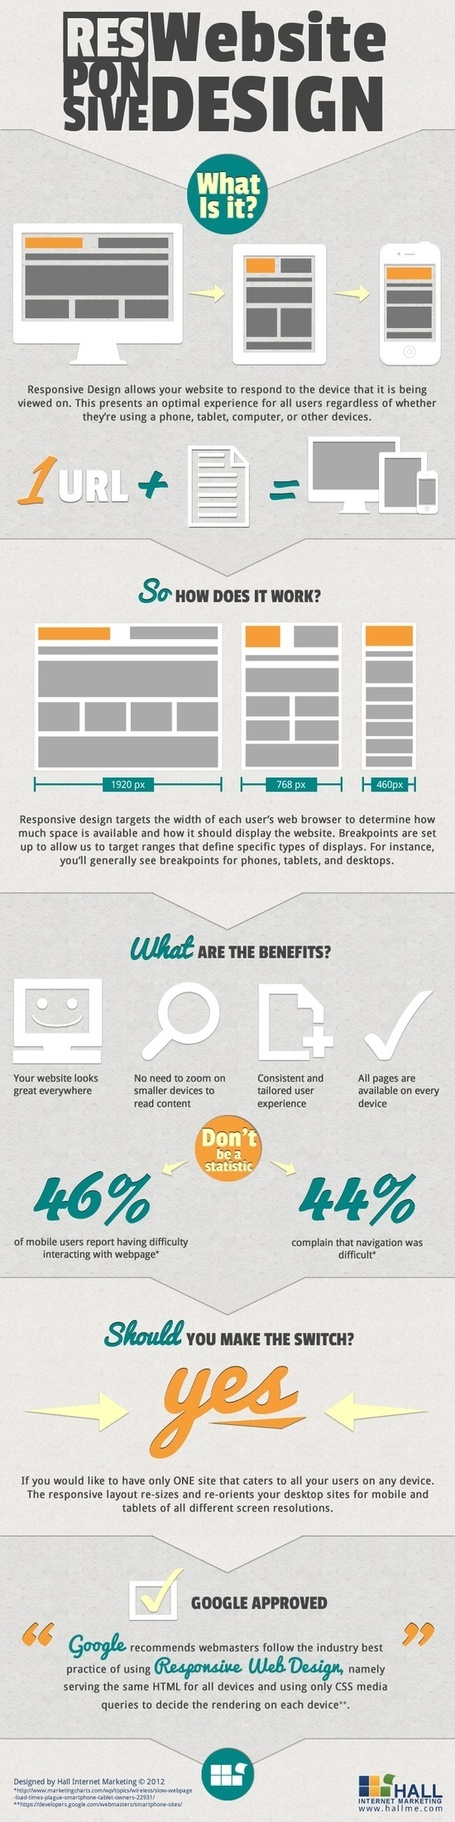 Responsive Website Design, What Is It? [Infographic] | Mobile Revolution | Scoop.it